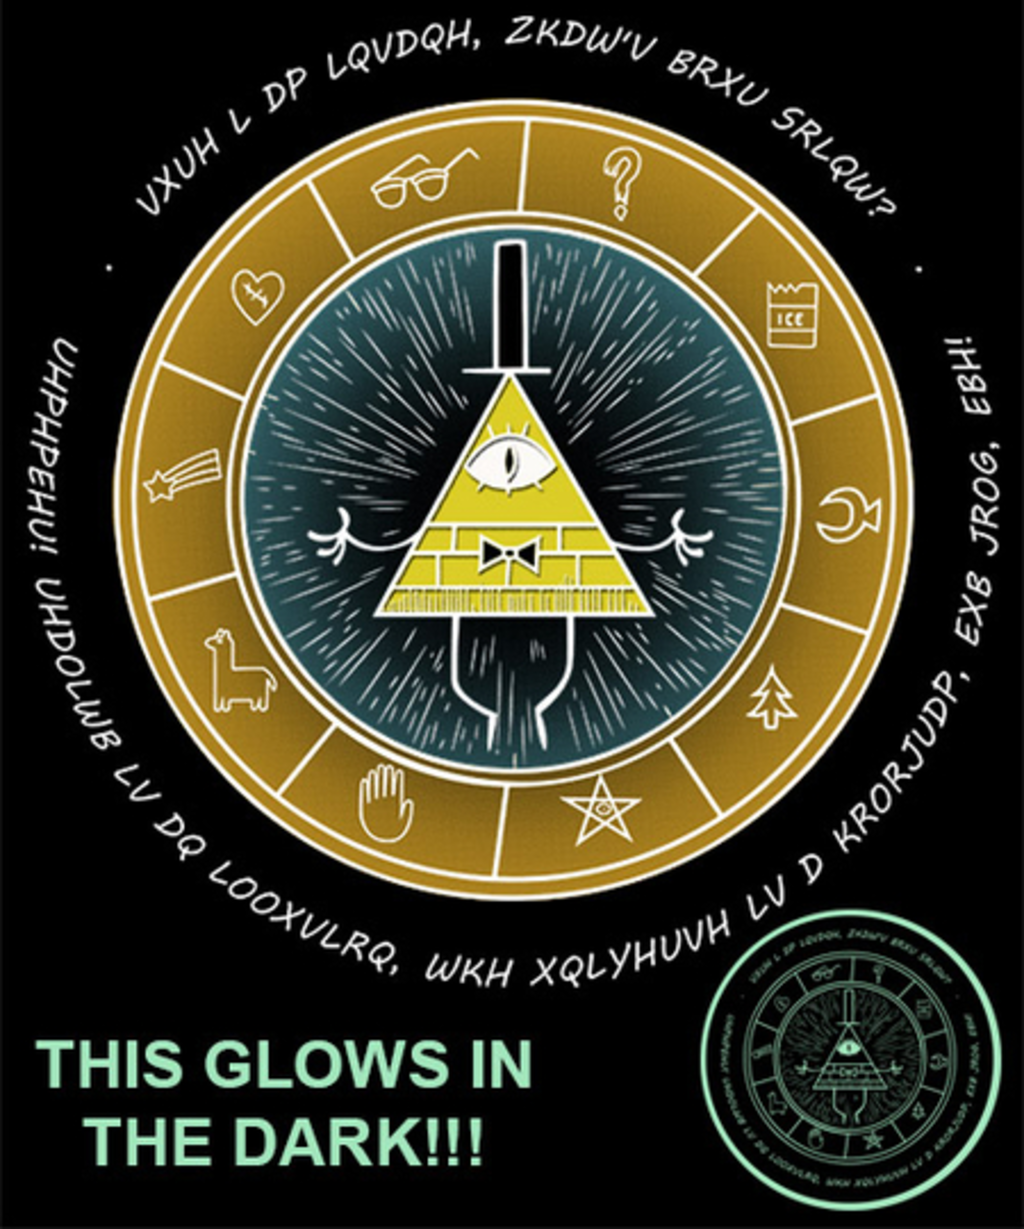 Qwertee: Encrypted Bill - Glow in the dark